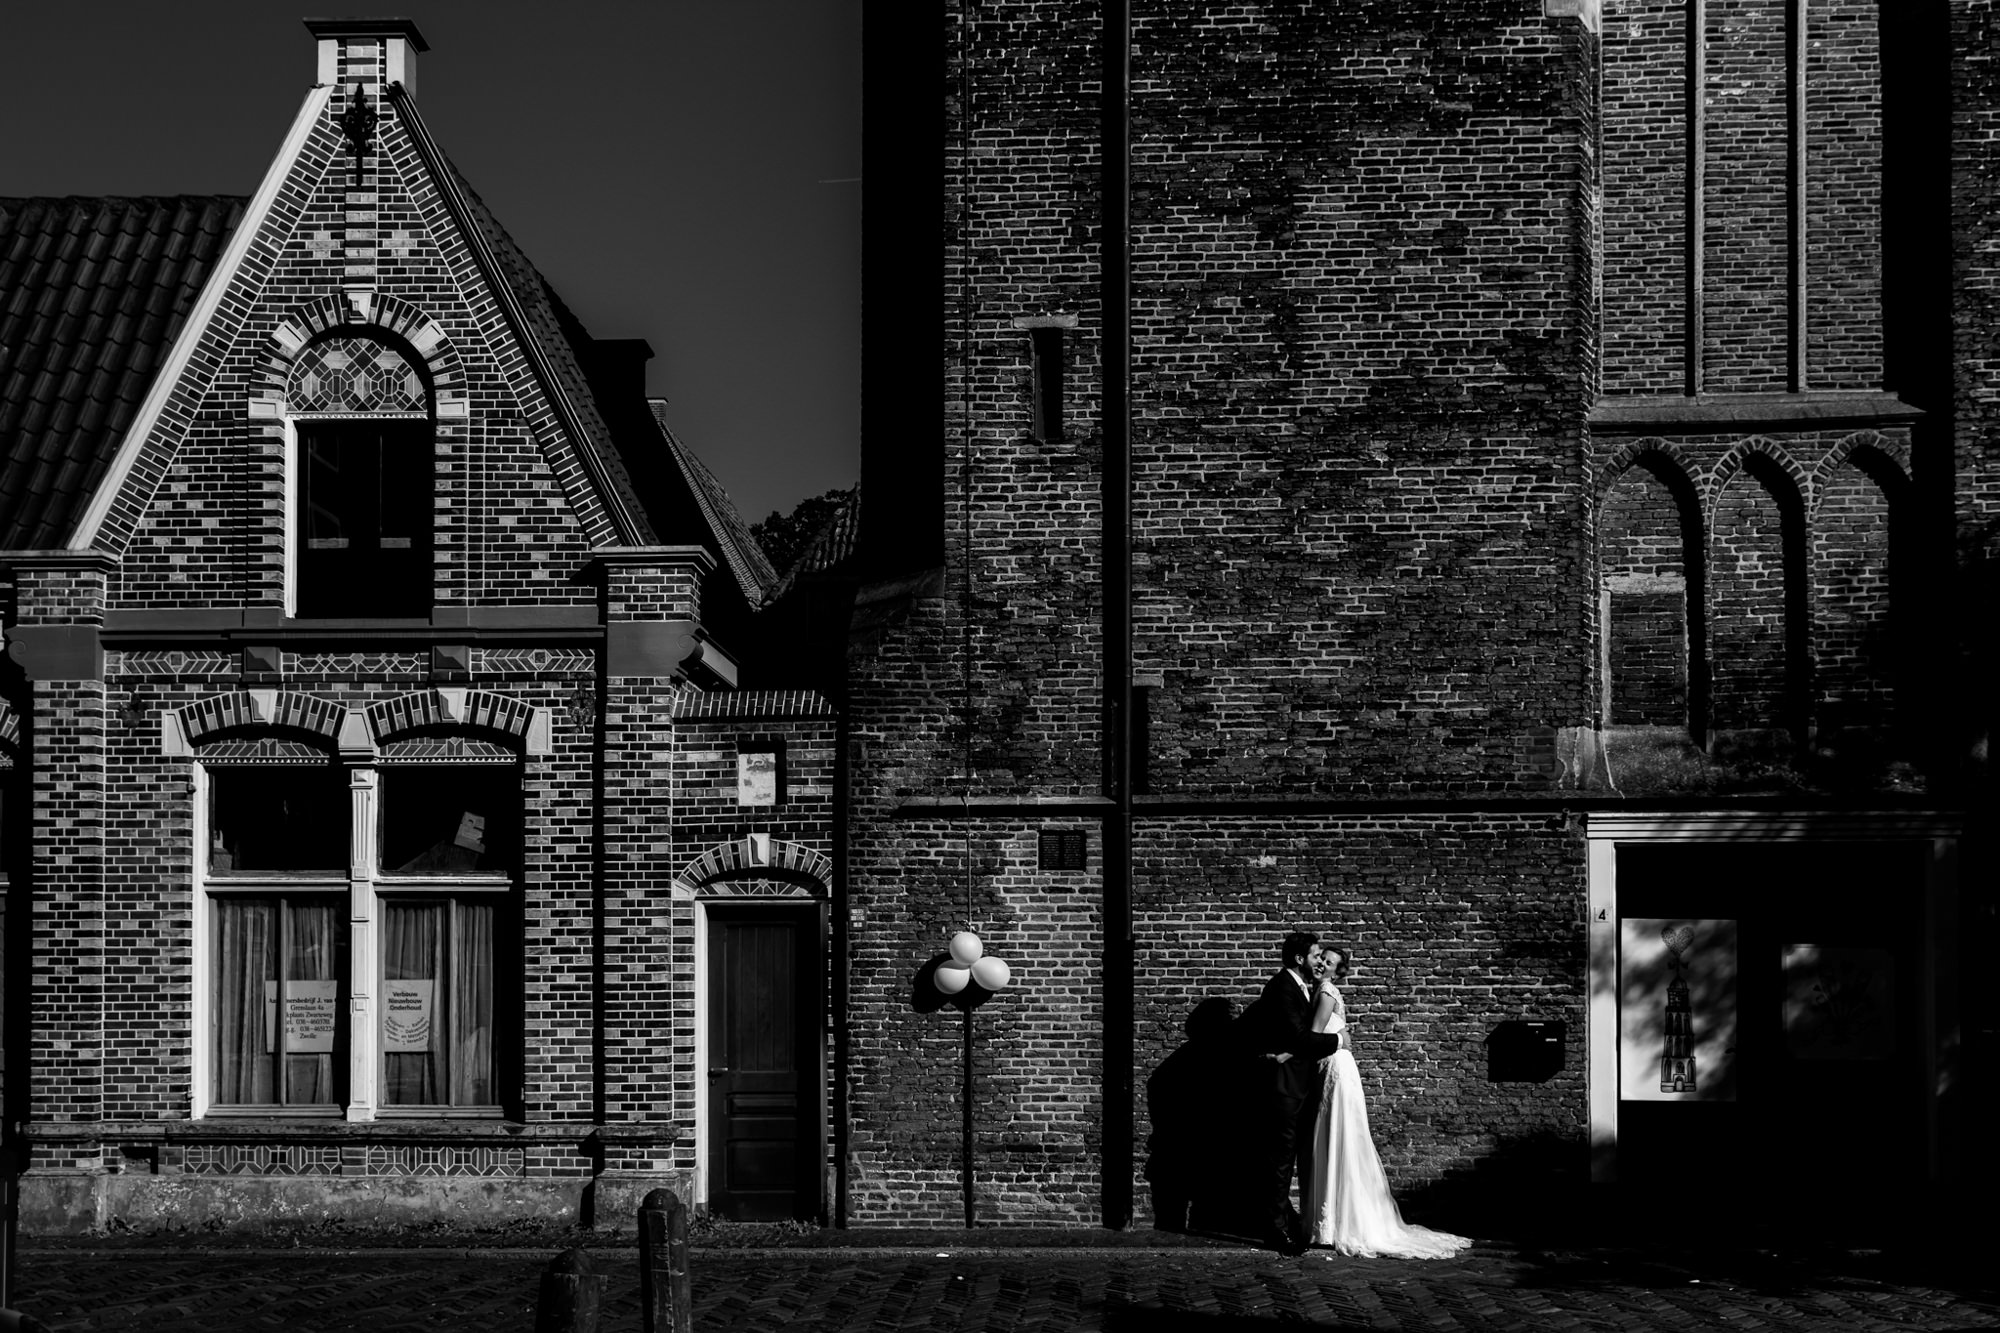 Bride and groom in front of old brick building photo by Fotobelle: Isabelle Hattink